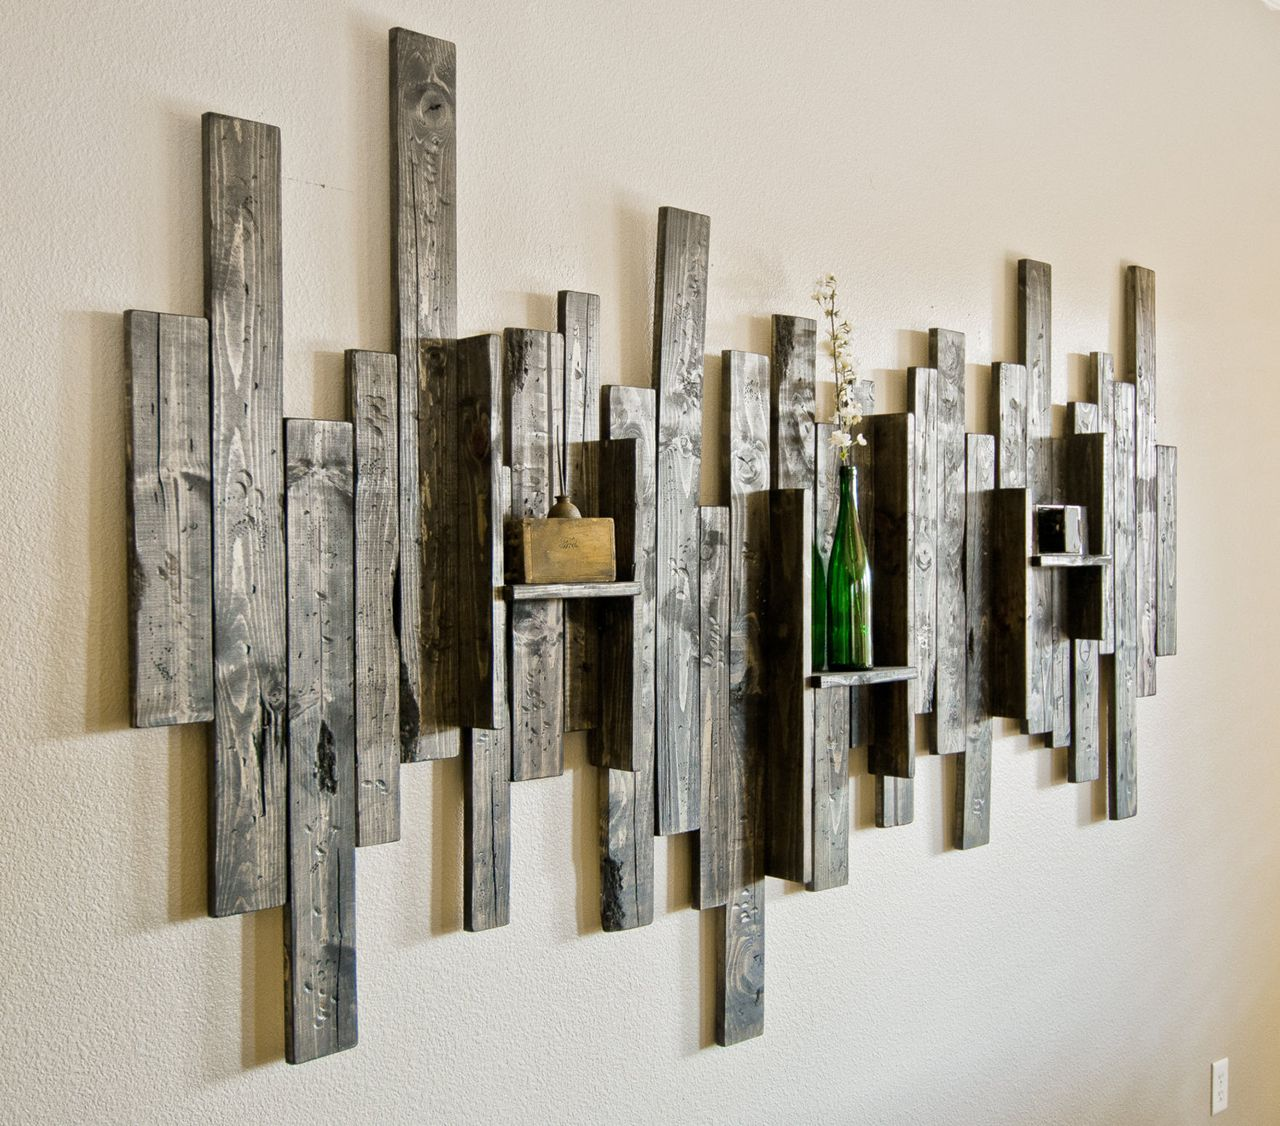 Abstract Wall Art and Shelf from Rustic Barn Wood